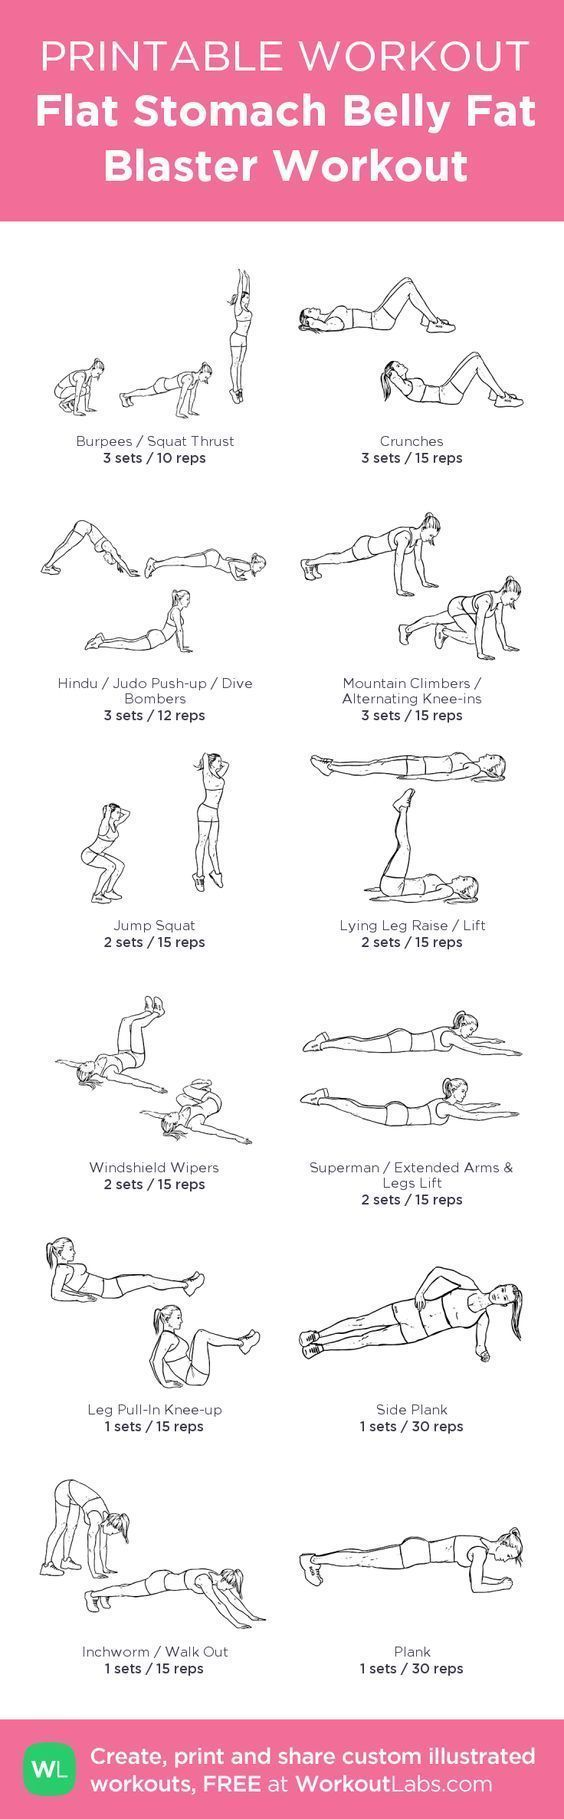 Flat Stomach Belly Fat Blaster No Equipment Workout for Women – Free beginner printable workout you can do at home without weights today! Visit http://wlabs.me/1pirVdg # vegetables for weight loss # best diet to lose weight in 2 weeks